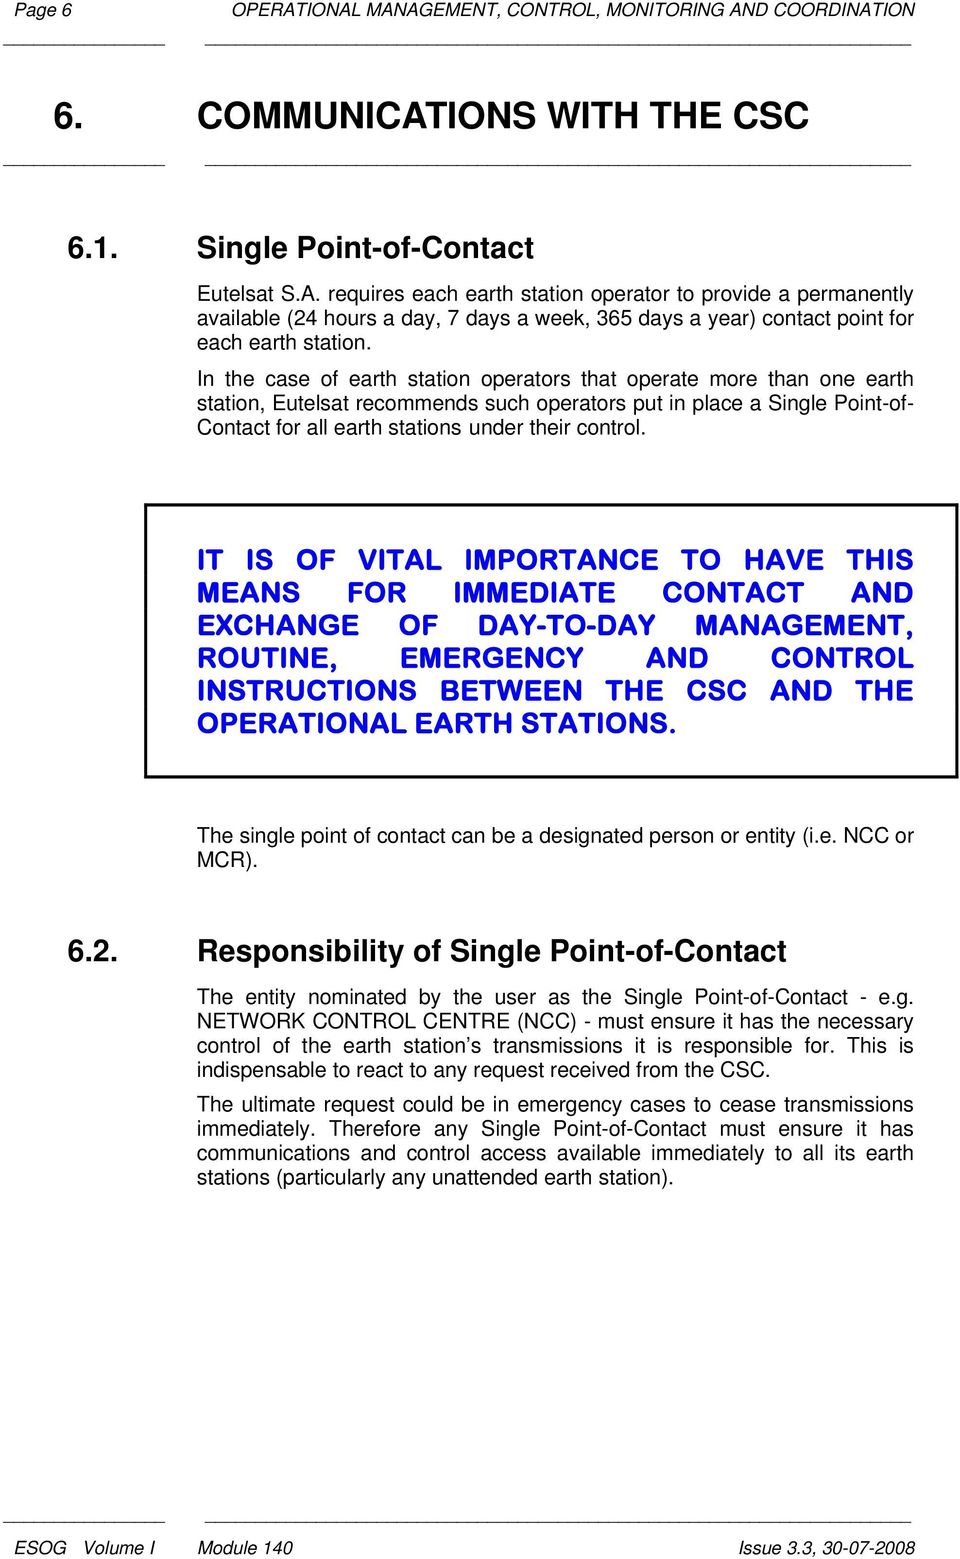 IT IS OF VITAL IMPORTANCE TO HAVE THIS MEANS FOR IMMEDIATE CONTACT AND EXCHANGE OF DAY-TO-DAY MANAGEMENT, ROUTINE, EMERGENCY AND CONTROL INSTRUCTIONS BETWEEN THE CSC AND THE OPERATIONAL EARTH